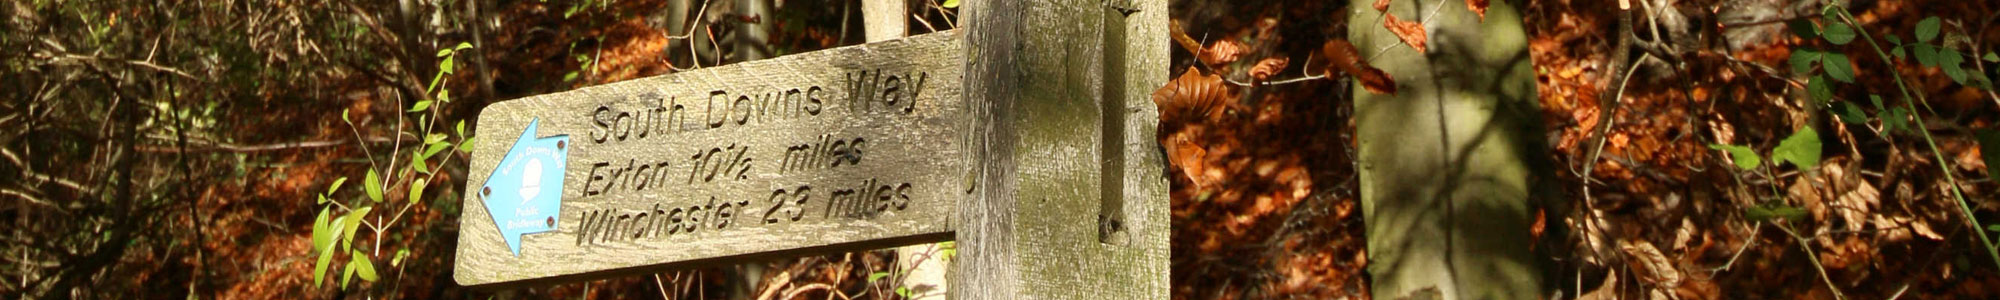 A selection of photos from the Clanfield area